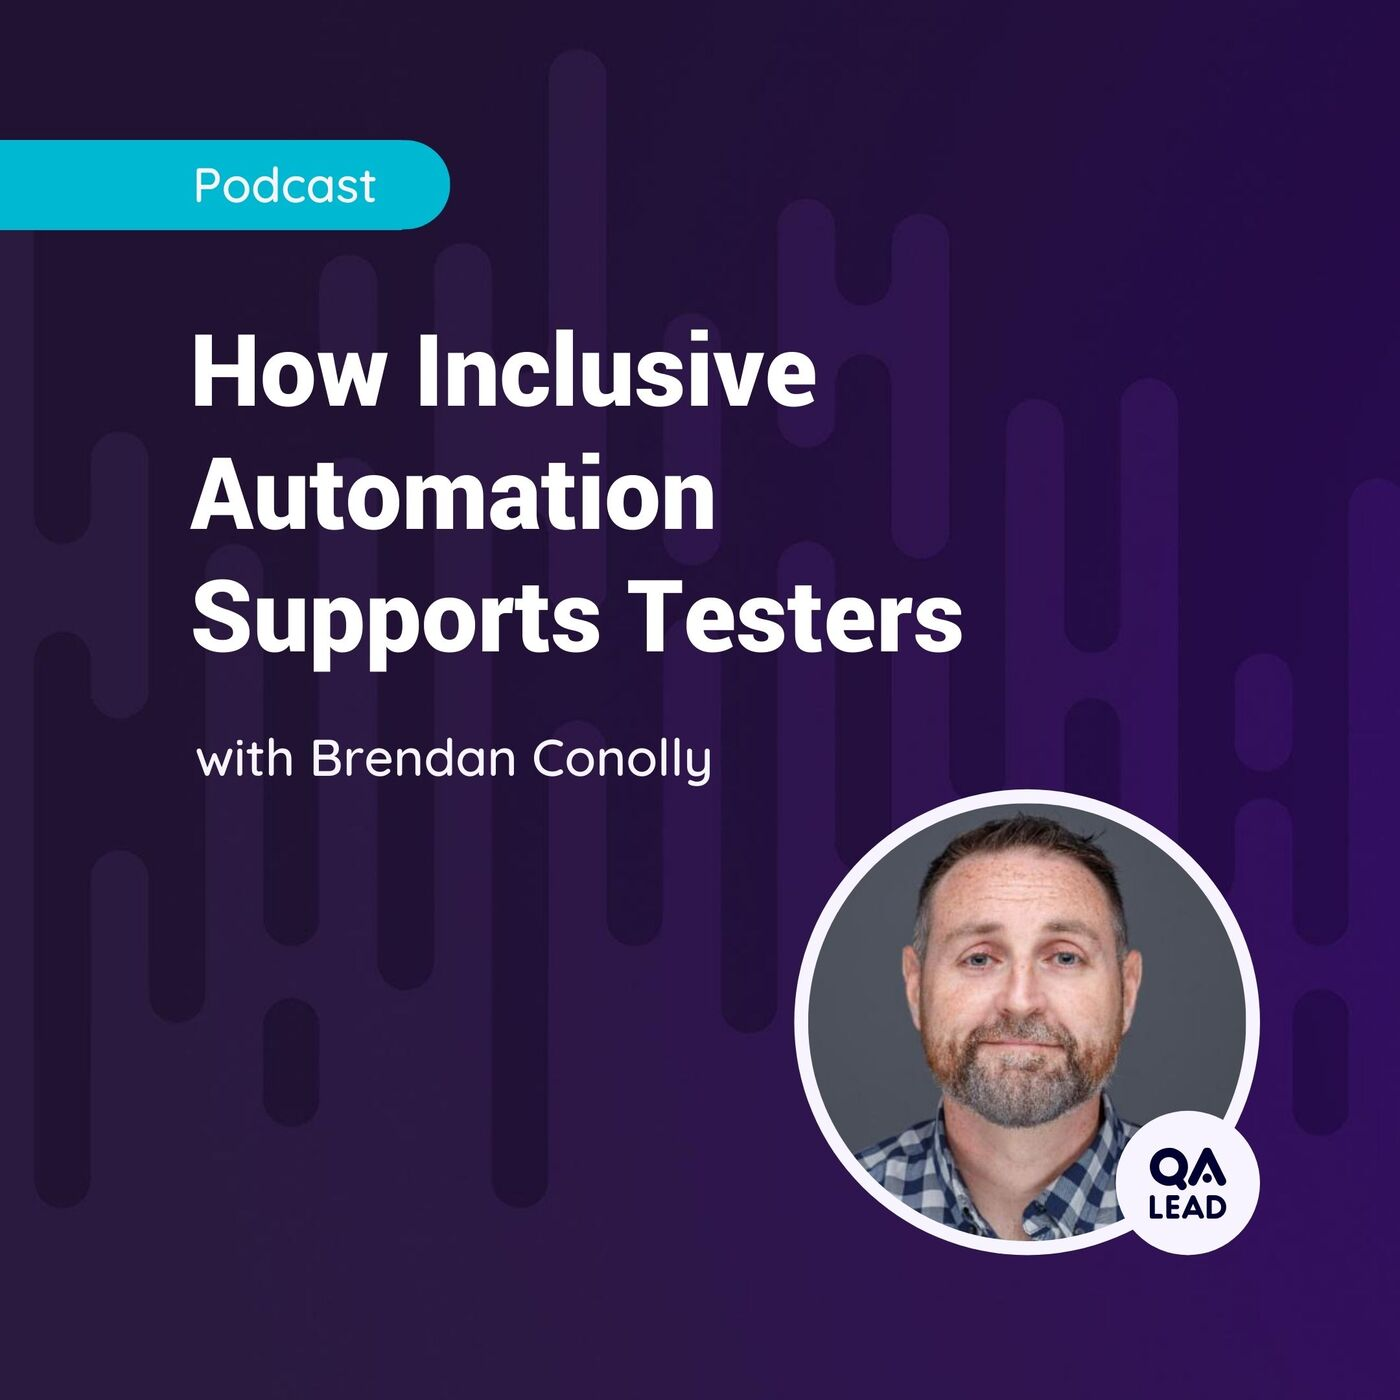 How Inclusive Automation Supports Testers (with Brendan Connolly from Procore Technologies)